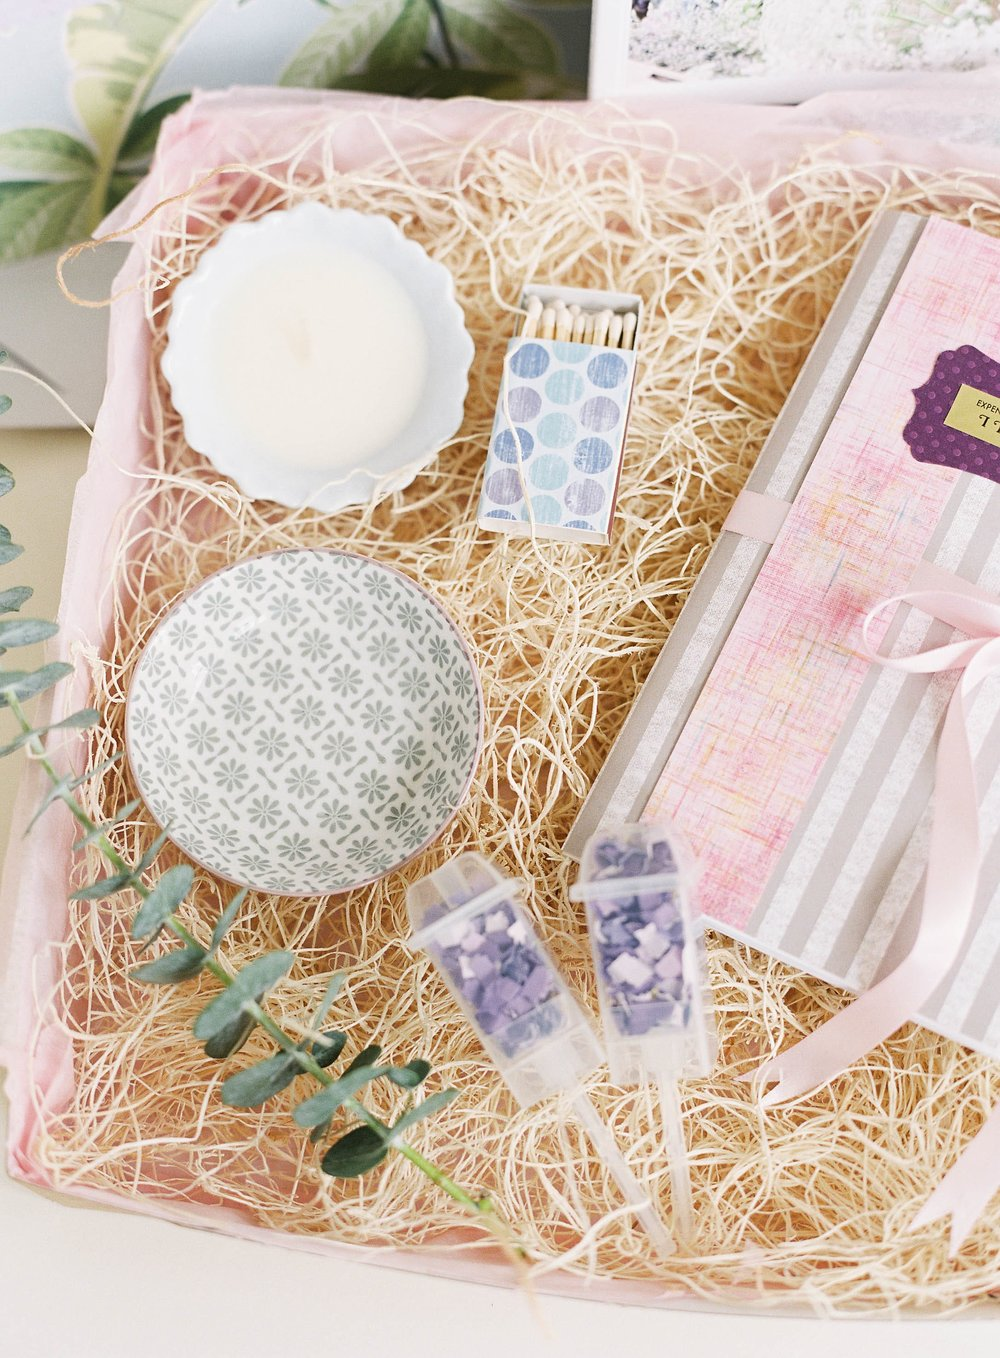 Dream Big Engagement Gift Box by Gilded Gifts photo 2.jpg